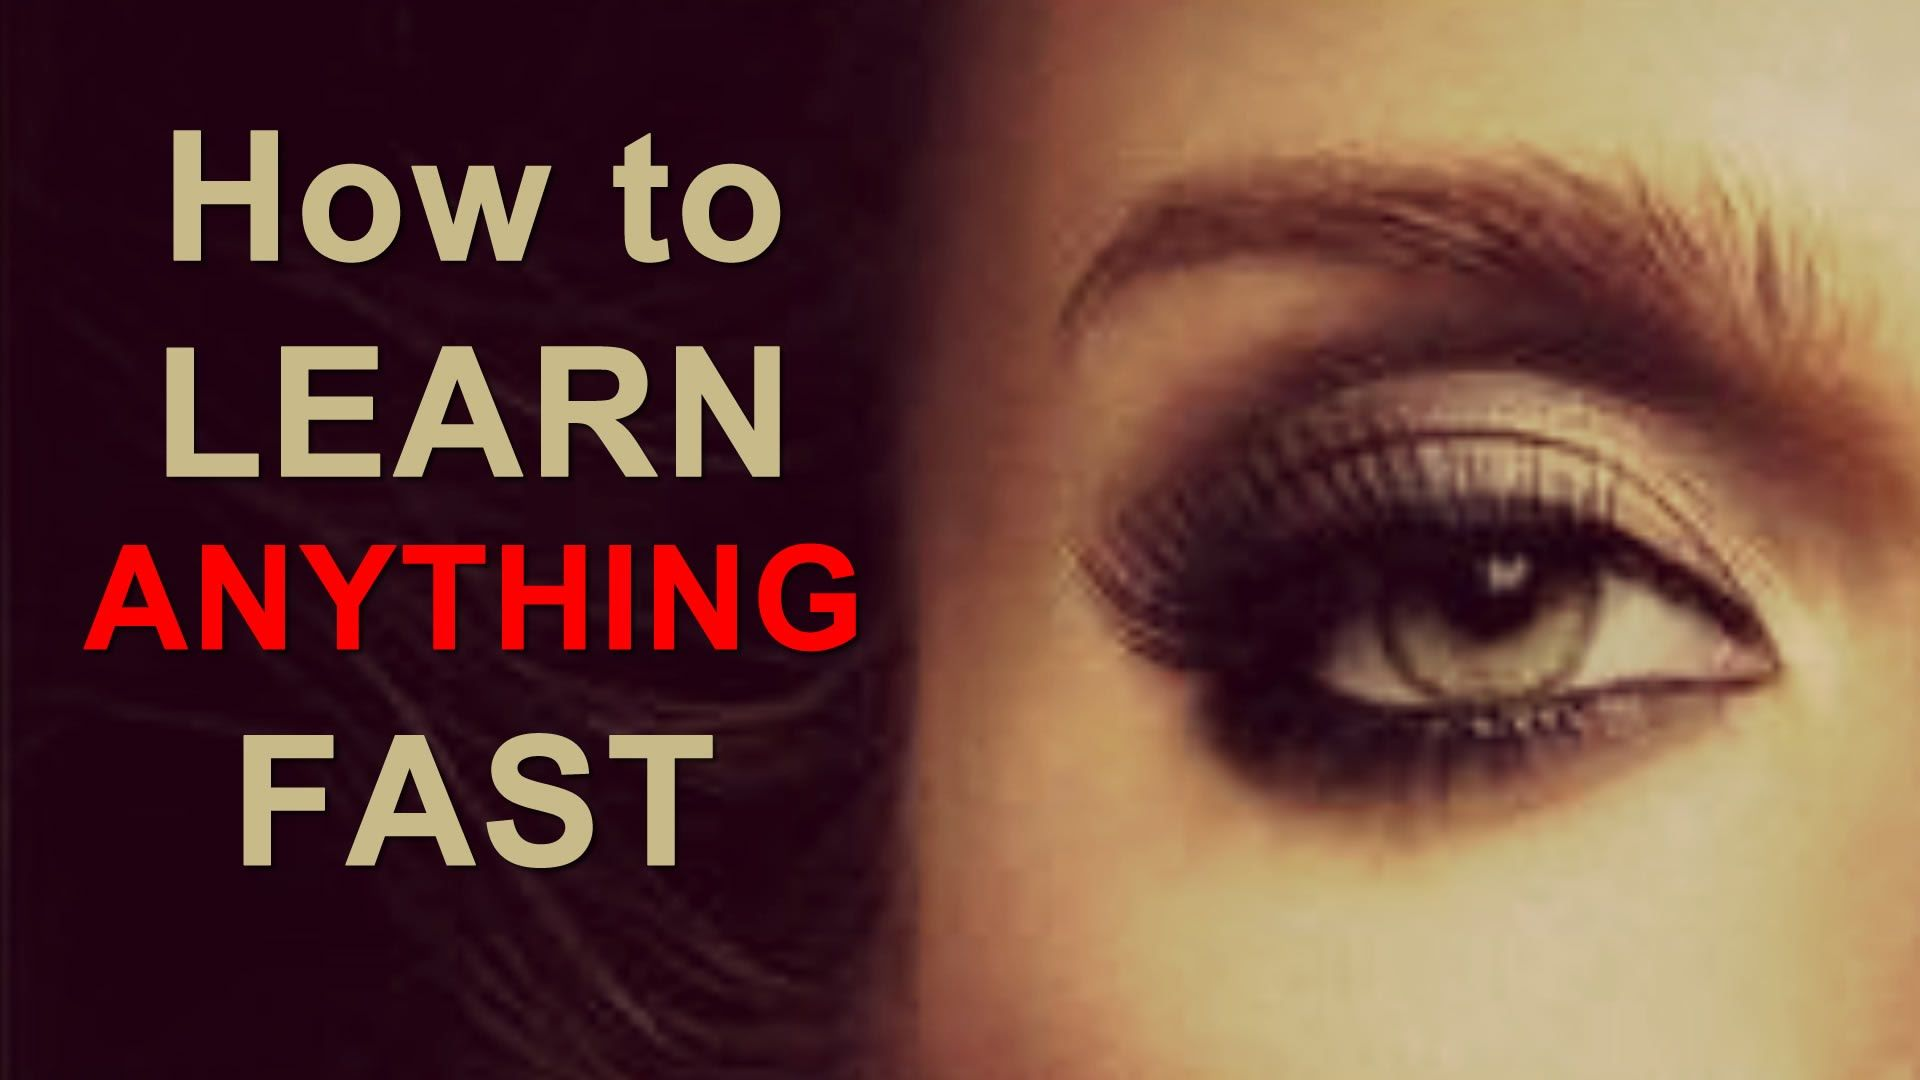 https//youtu.be/vBWD3PFKNEw video shows how to learn